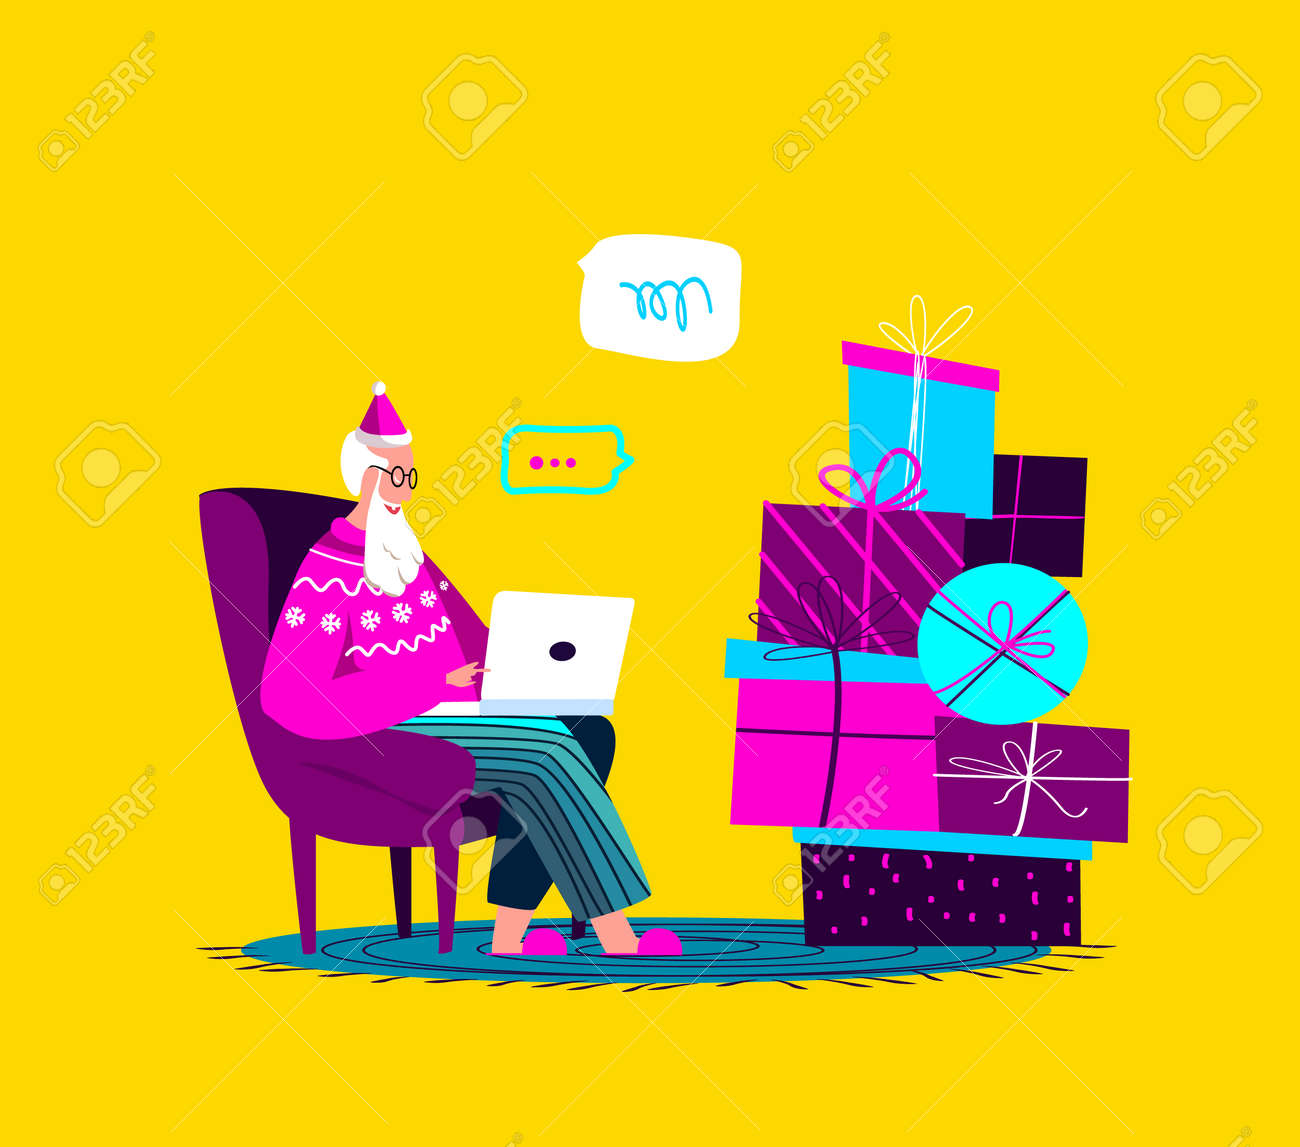 Santa Claus Sitting in Armchair with Laptop.Merry Christmas, Happy New Year.Prepare Boxes of Gifts, Presents for Children.Chatting Correspondance. Writting Wish Letter.Cosy Xmas Atmosphere Illustration - 167666134